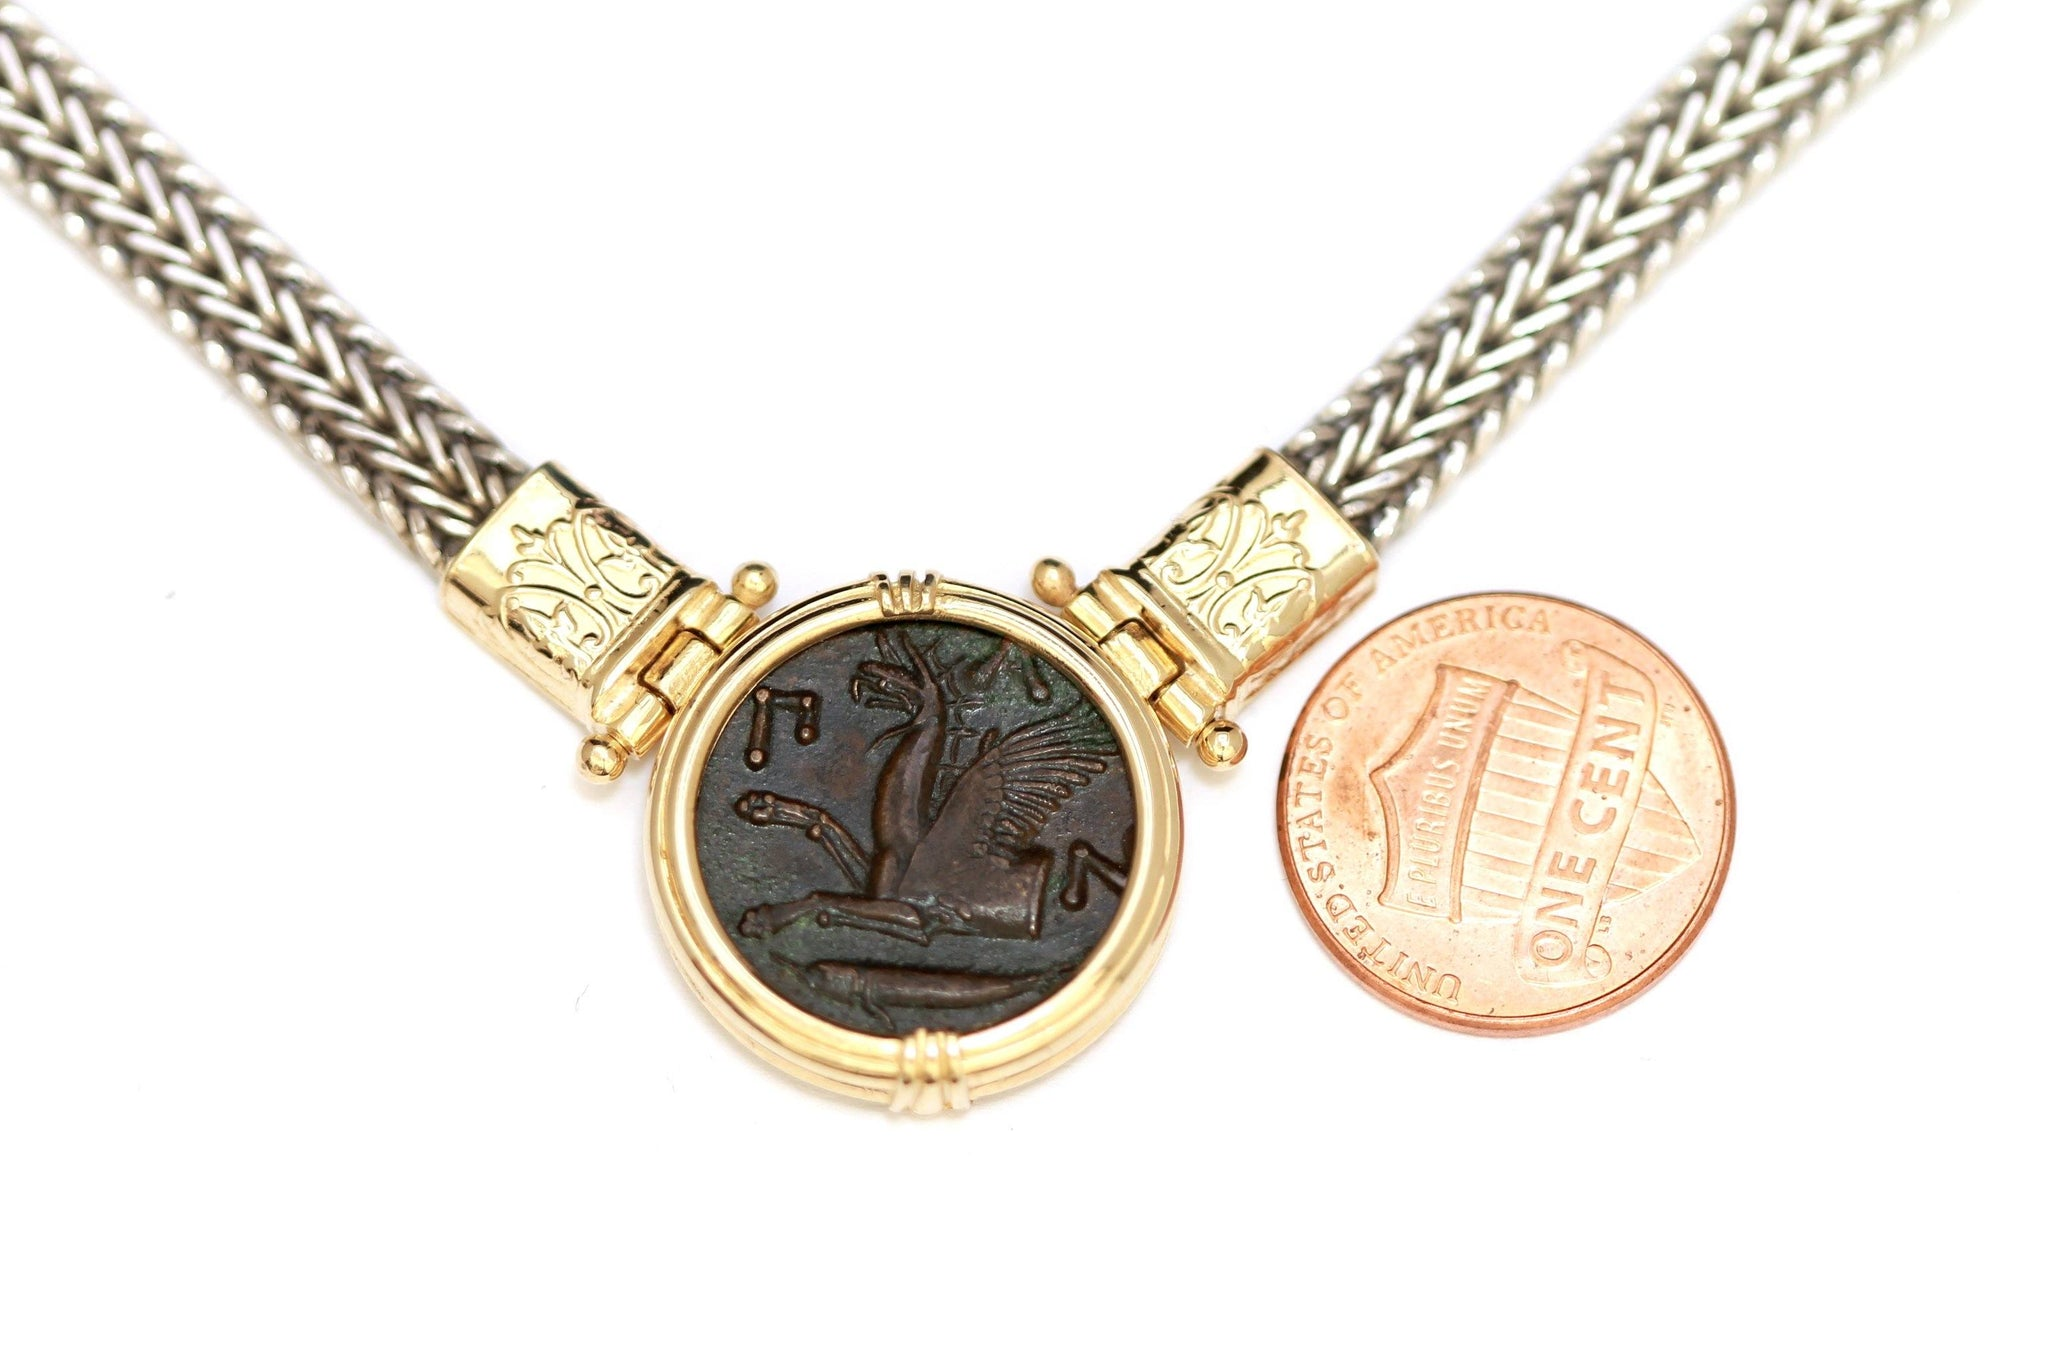 14K Gold Necklace, Silver Chain, Greek Bronze Coin, Certificate ID13033 - Erez Ancient Coin Jewelry, ancient coin jewelry, men jewelry, genuine ancient coins, made in the US